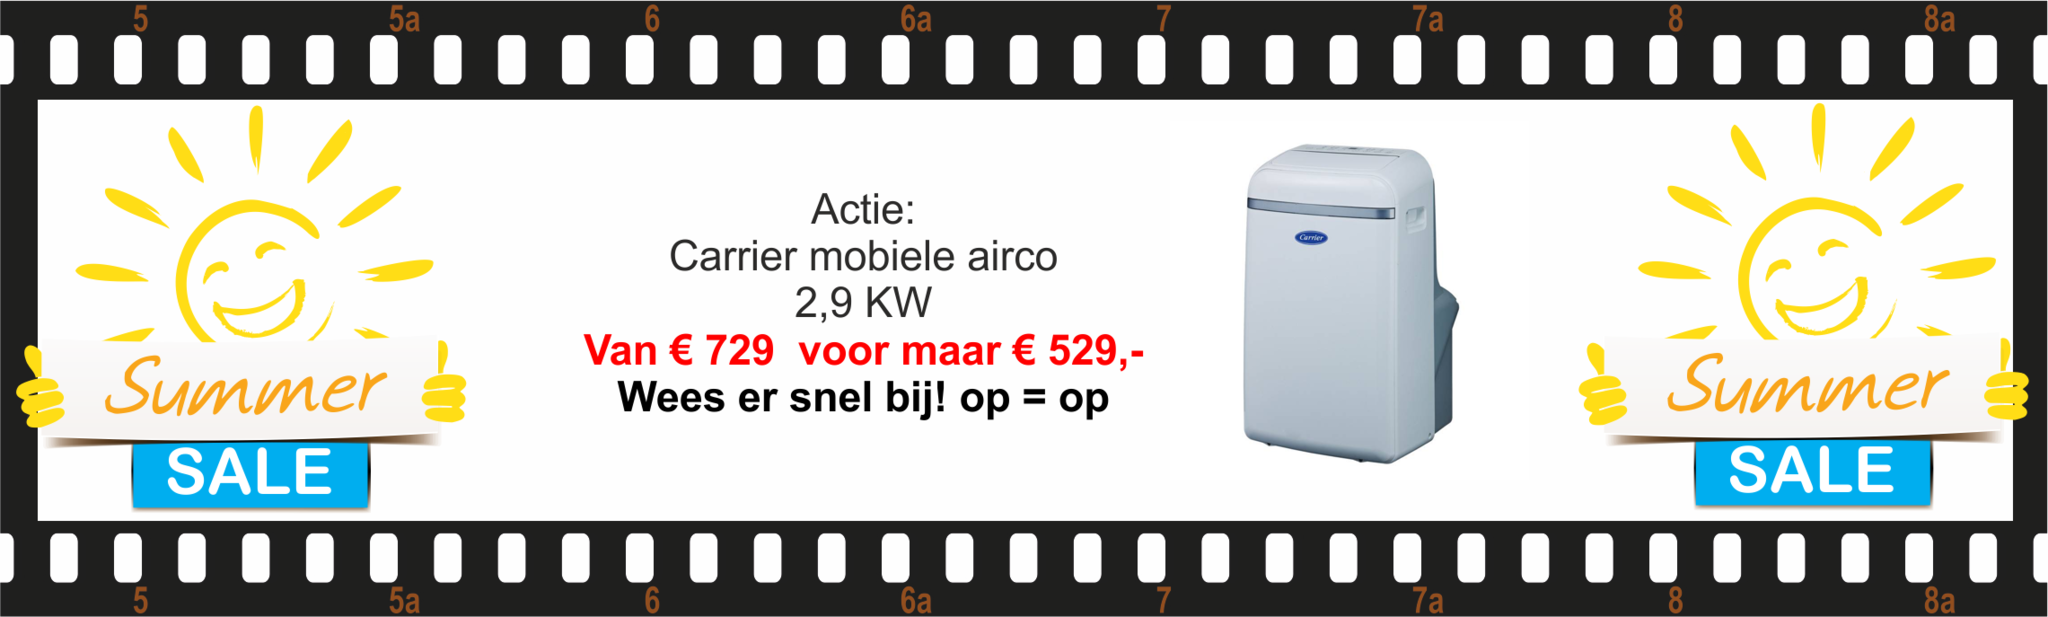 Carrier mobiele airco actie